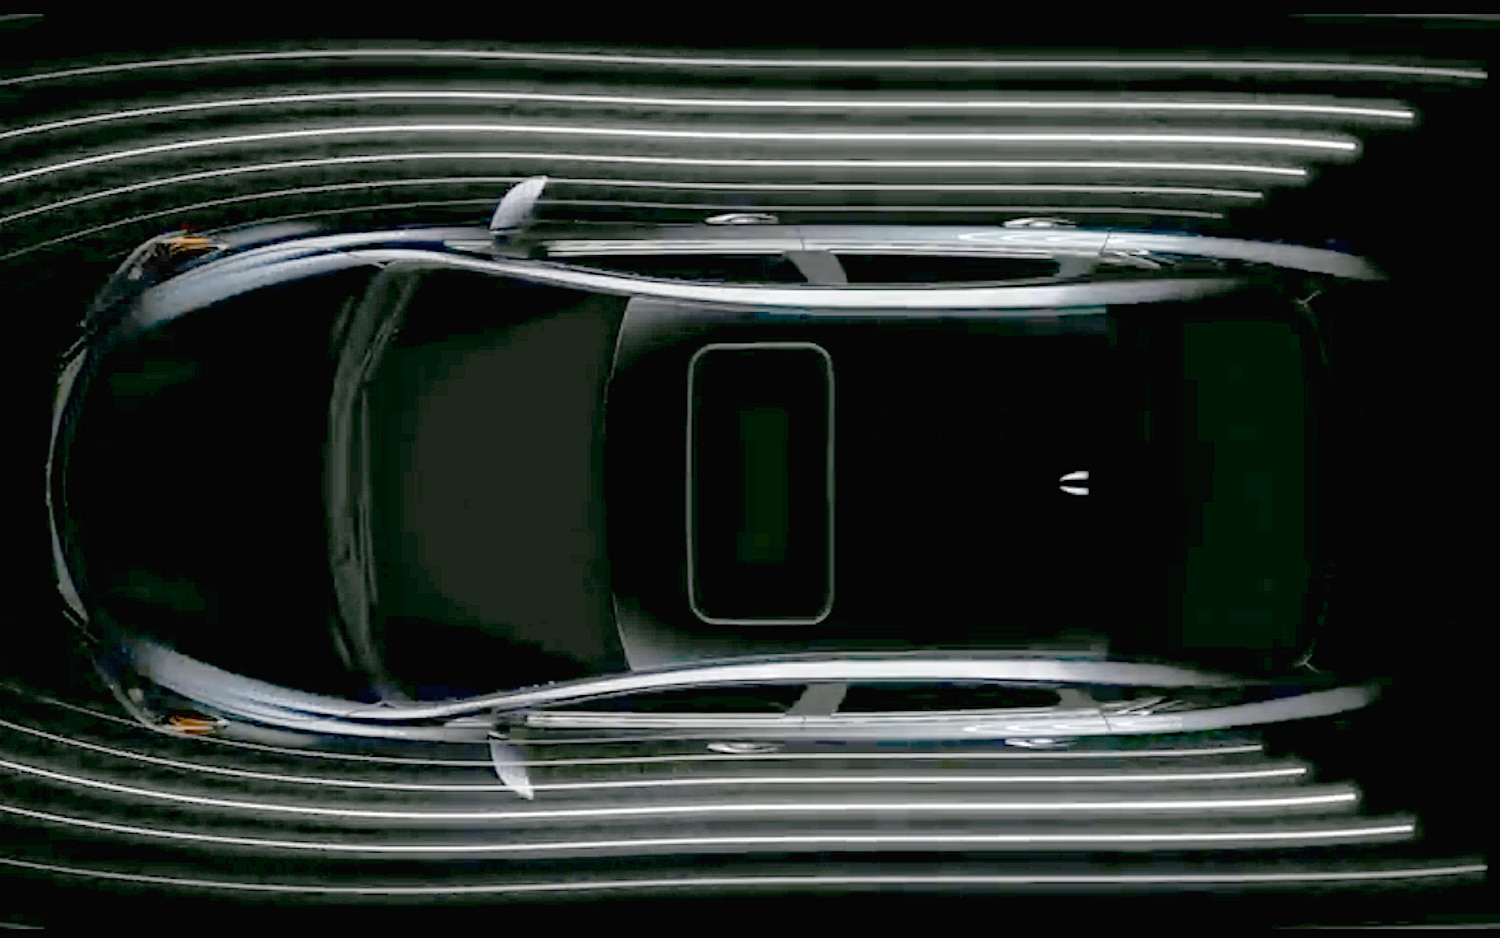 2013 Nissan Altima Teaser Top Down View1